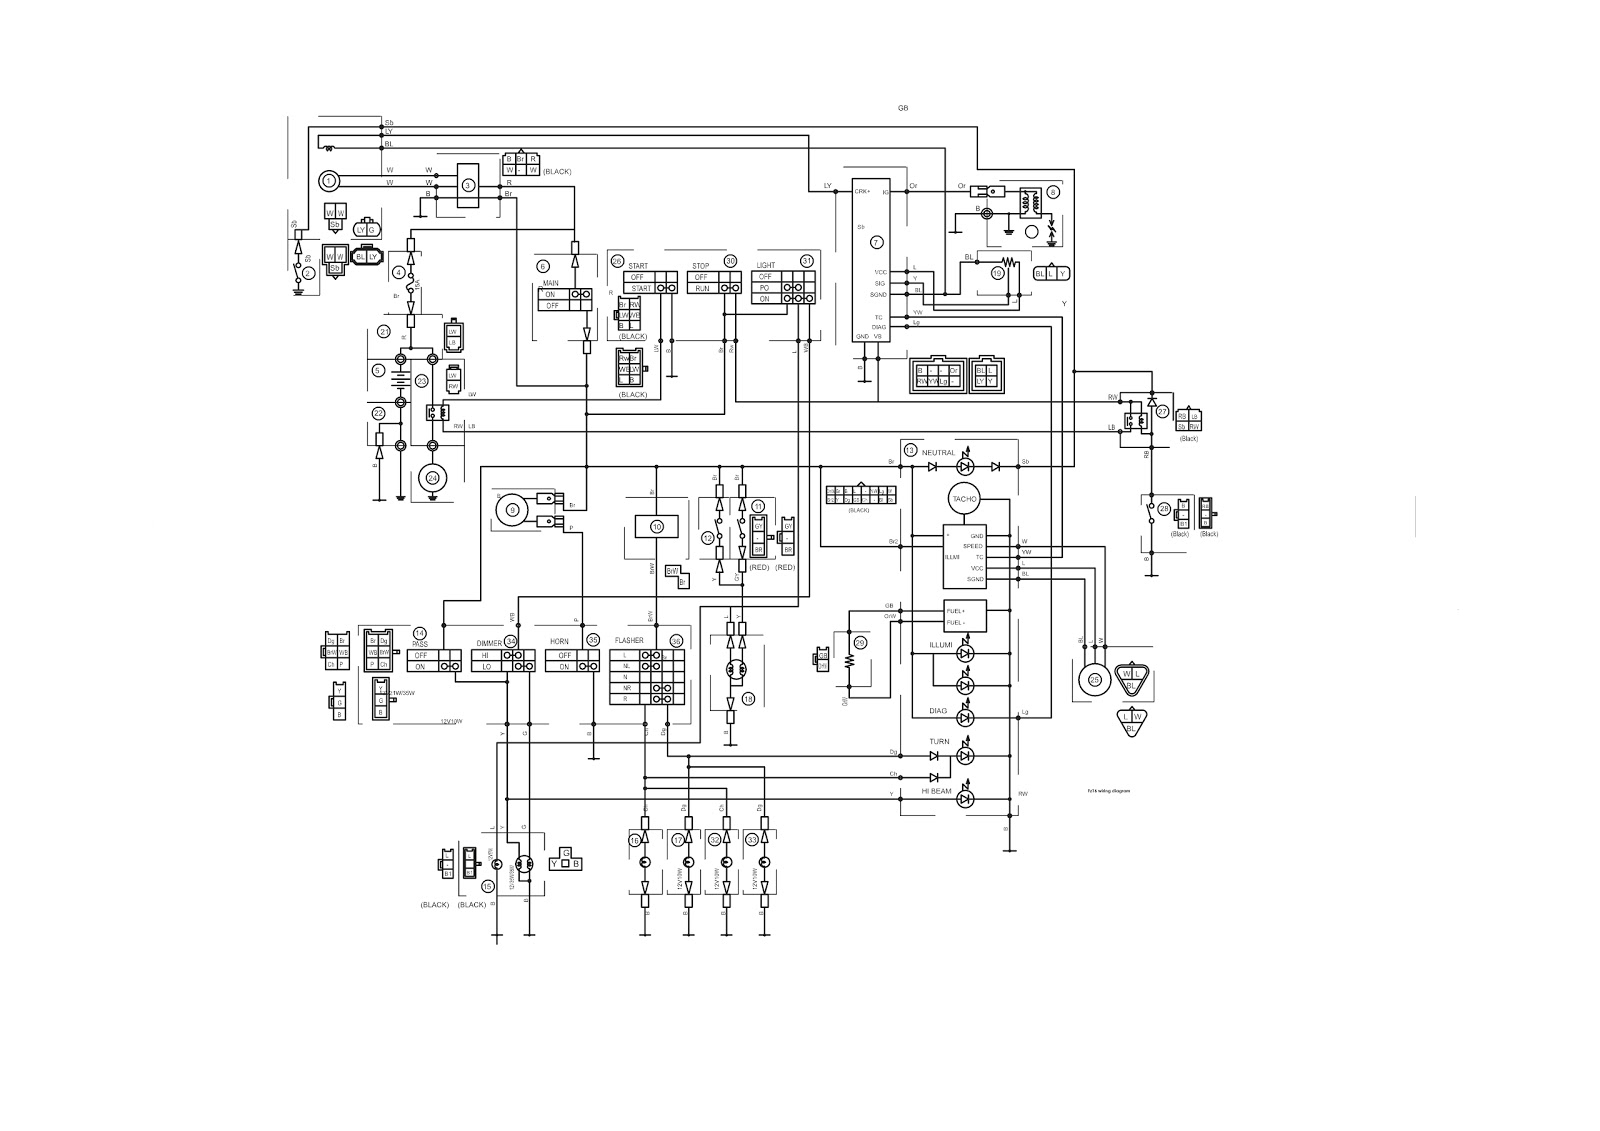 yamaha fzr wiring diagram | way-legend wiring diagram data |  way-legend.viaggionelmisteriosoegitto.it  viaggionelmisteriosoegitto.it